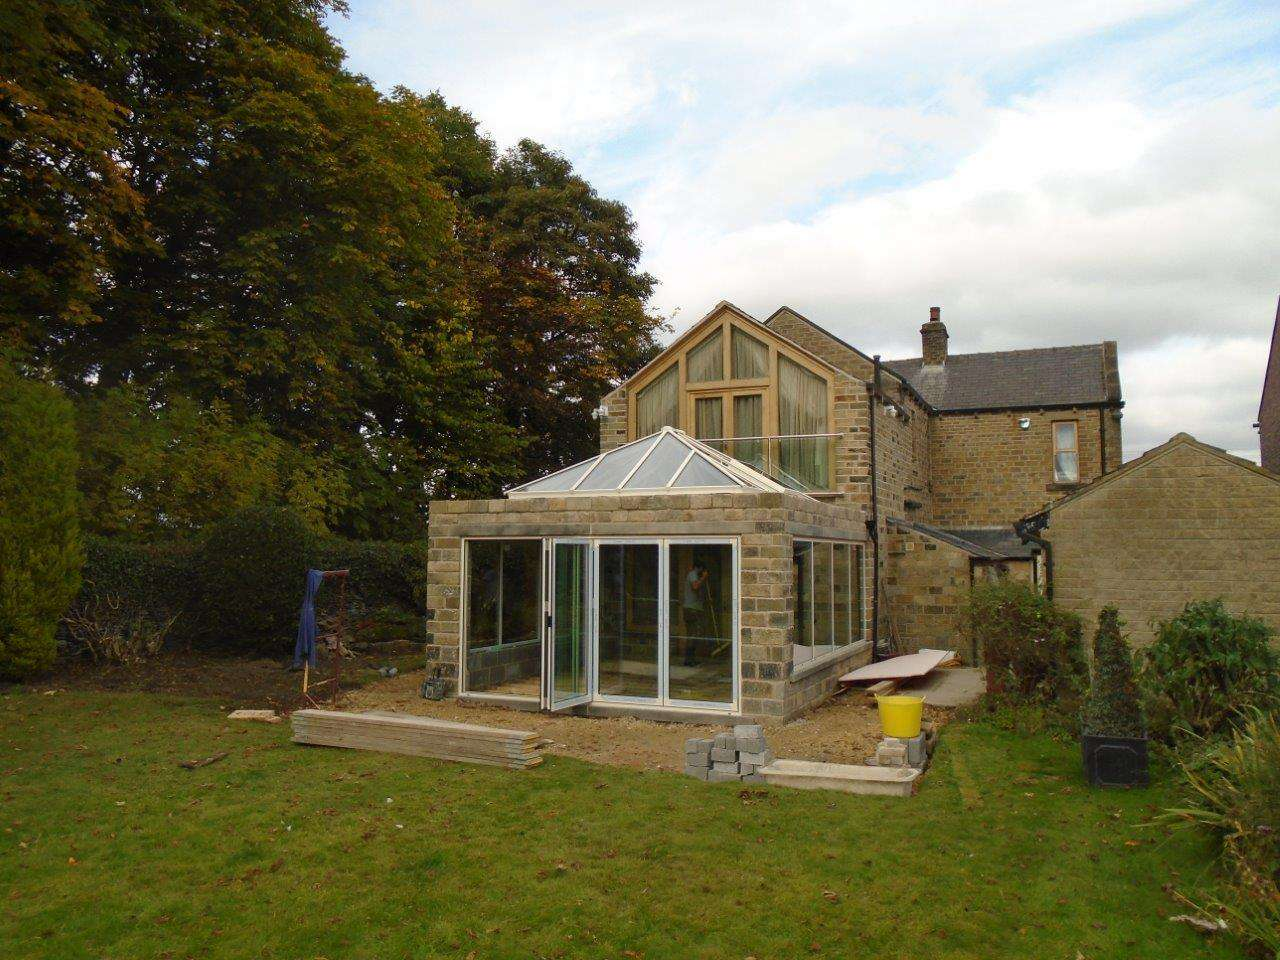 To find out how Clear View aluminium doors can aid in your home refurbishment just call us on 01484 859048. & Clear View Furnish Extension in Huddersfield - Clear View